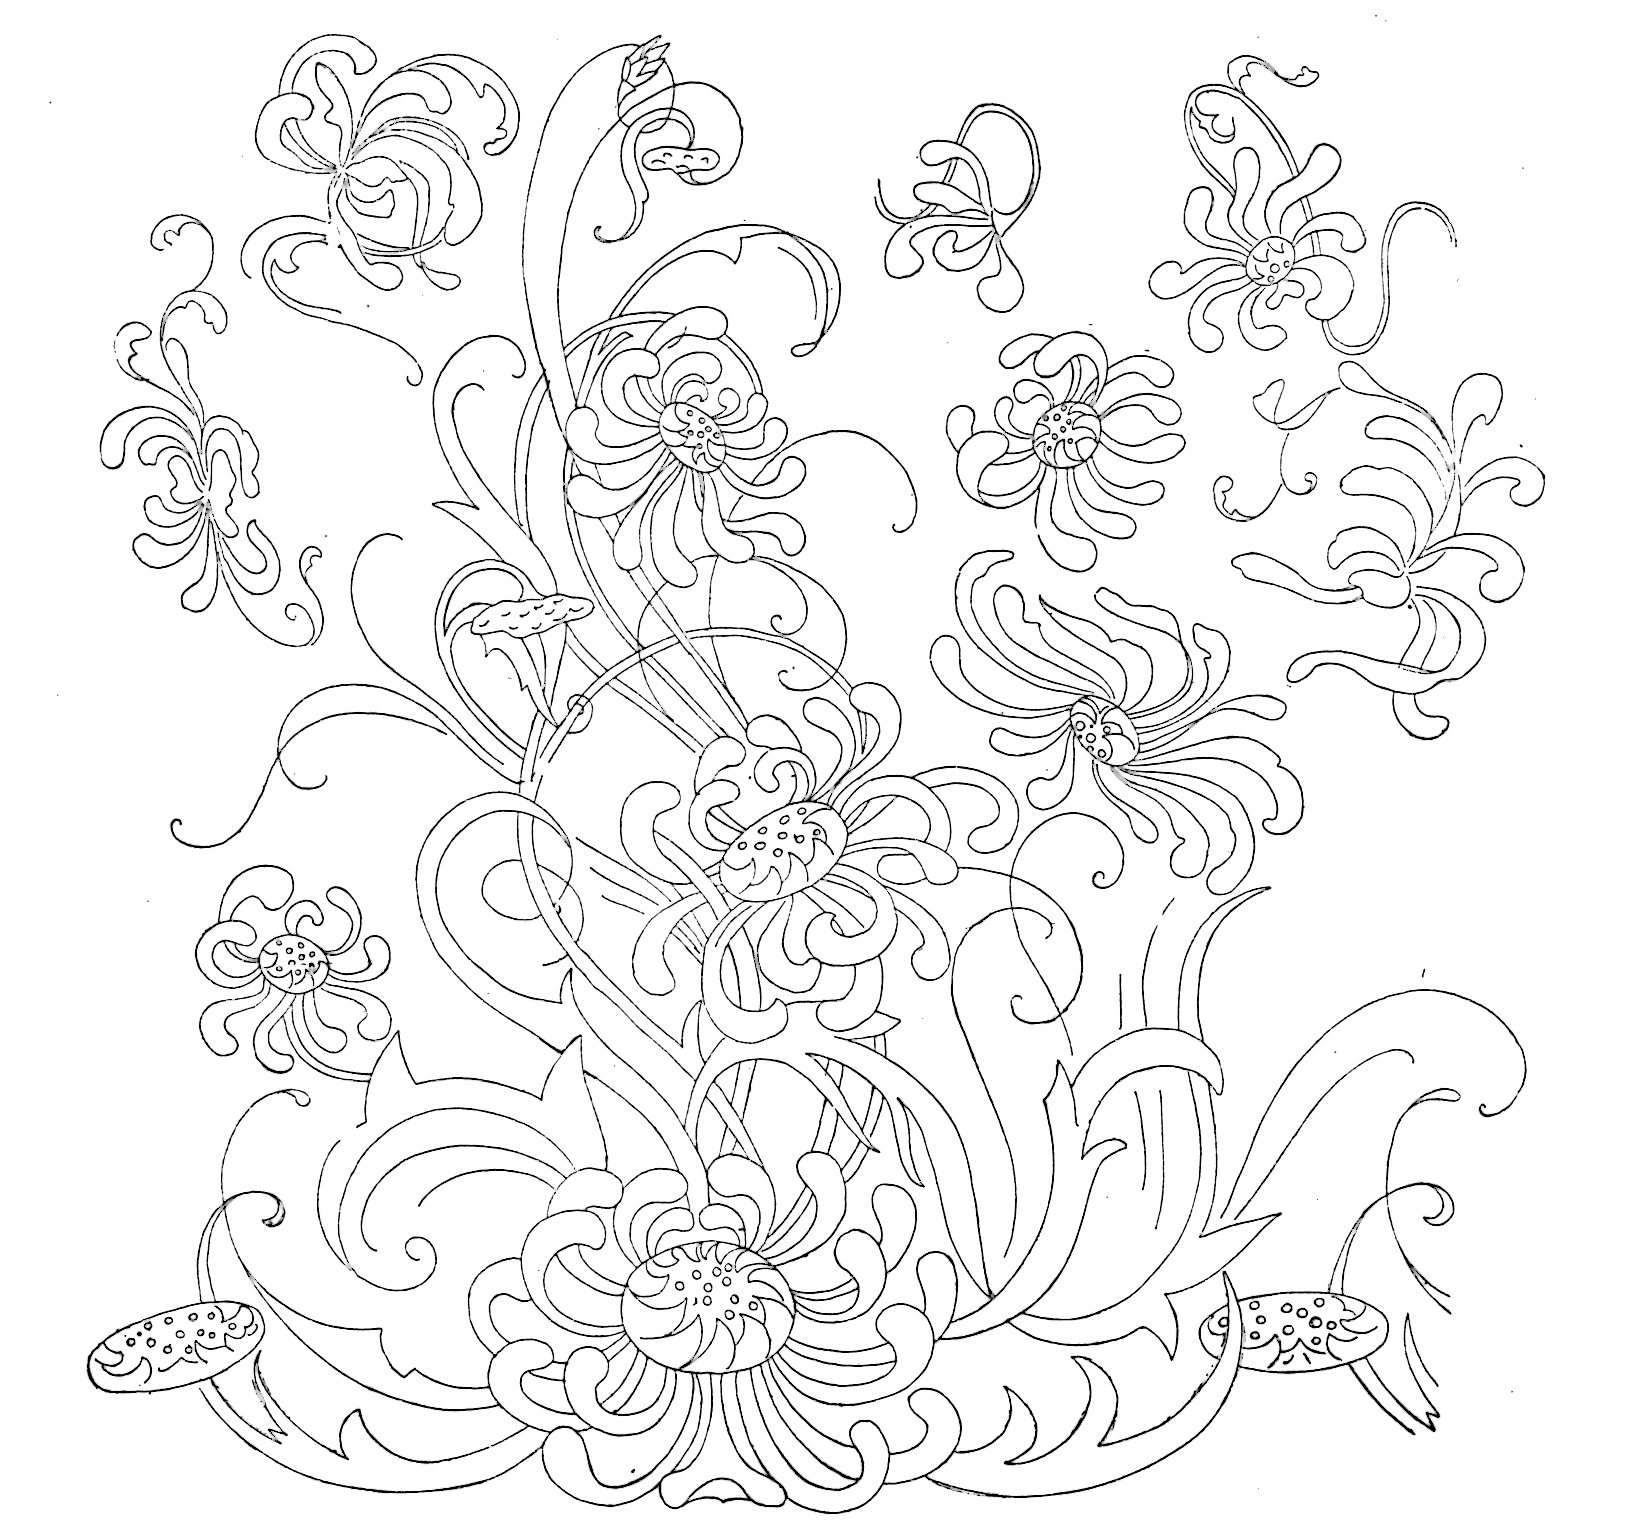 Free Flower Embroidery Patterns Free Embroidery Pattern Archives Vintage Crafts And More